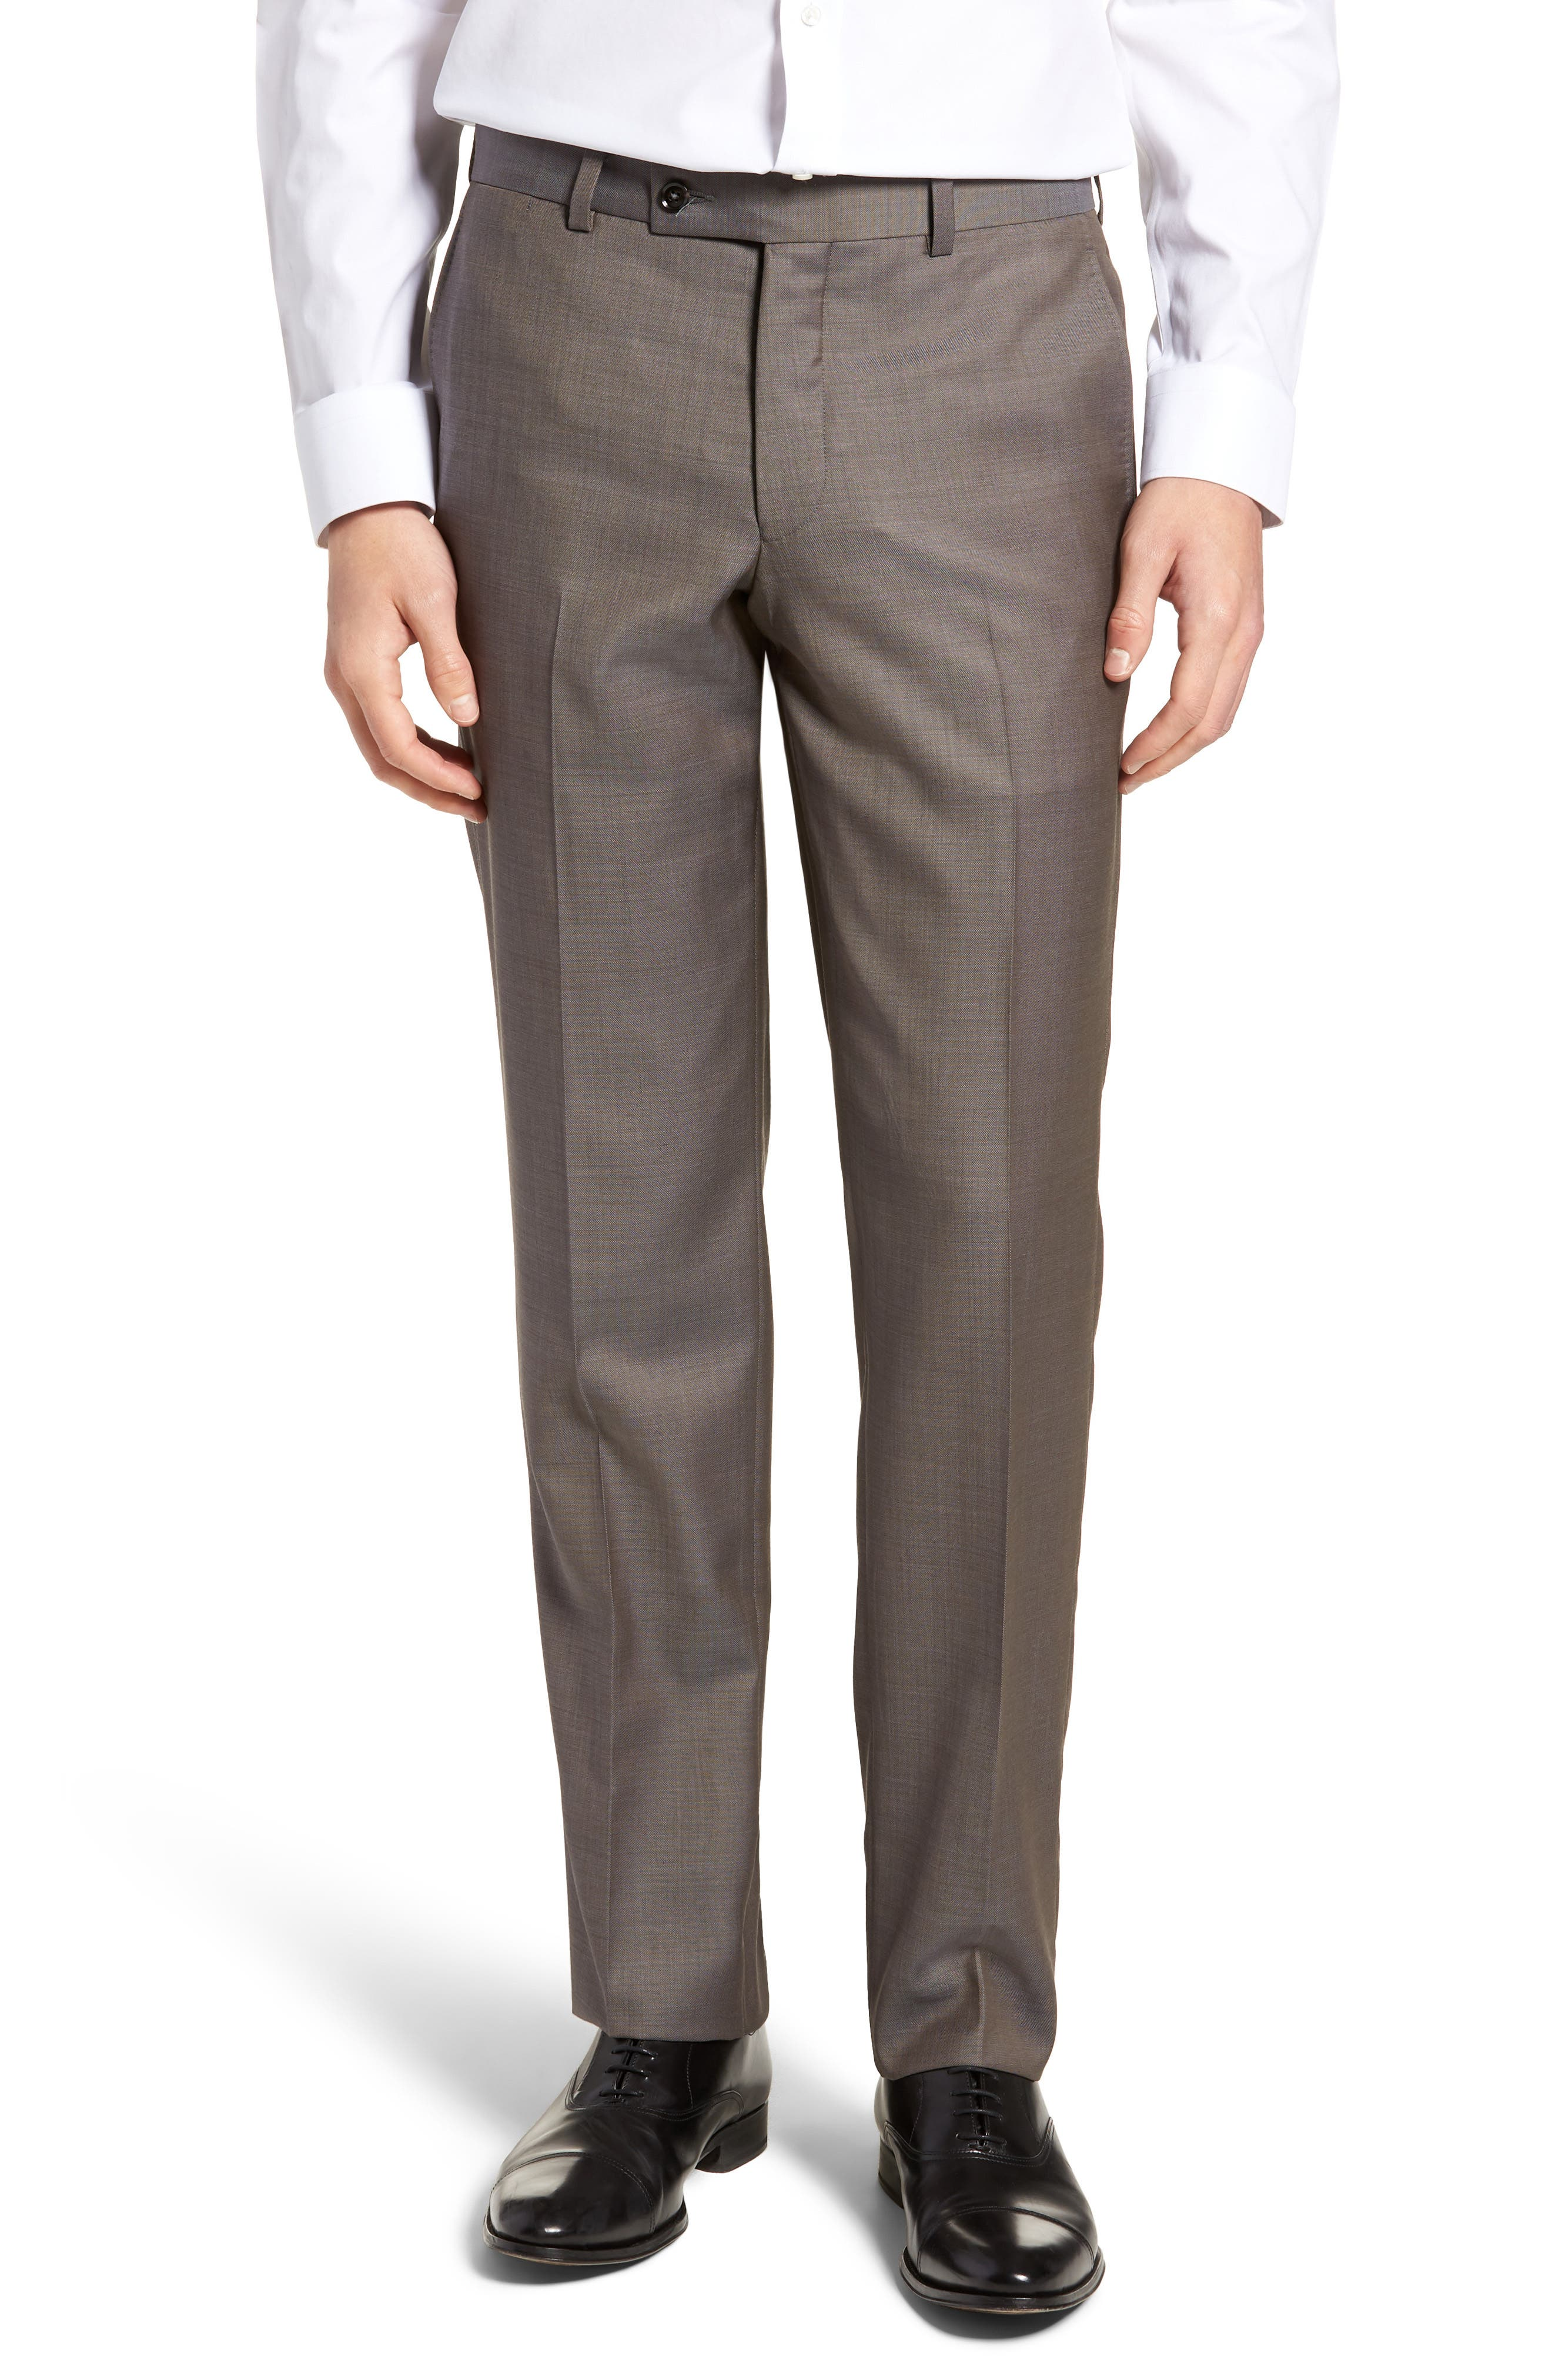 TED BAKER LONDON, Jefferson Flat Front Wool Trousers, Main thumbnail 1, color, MID GREY